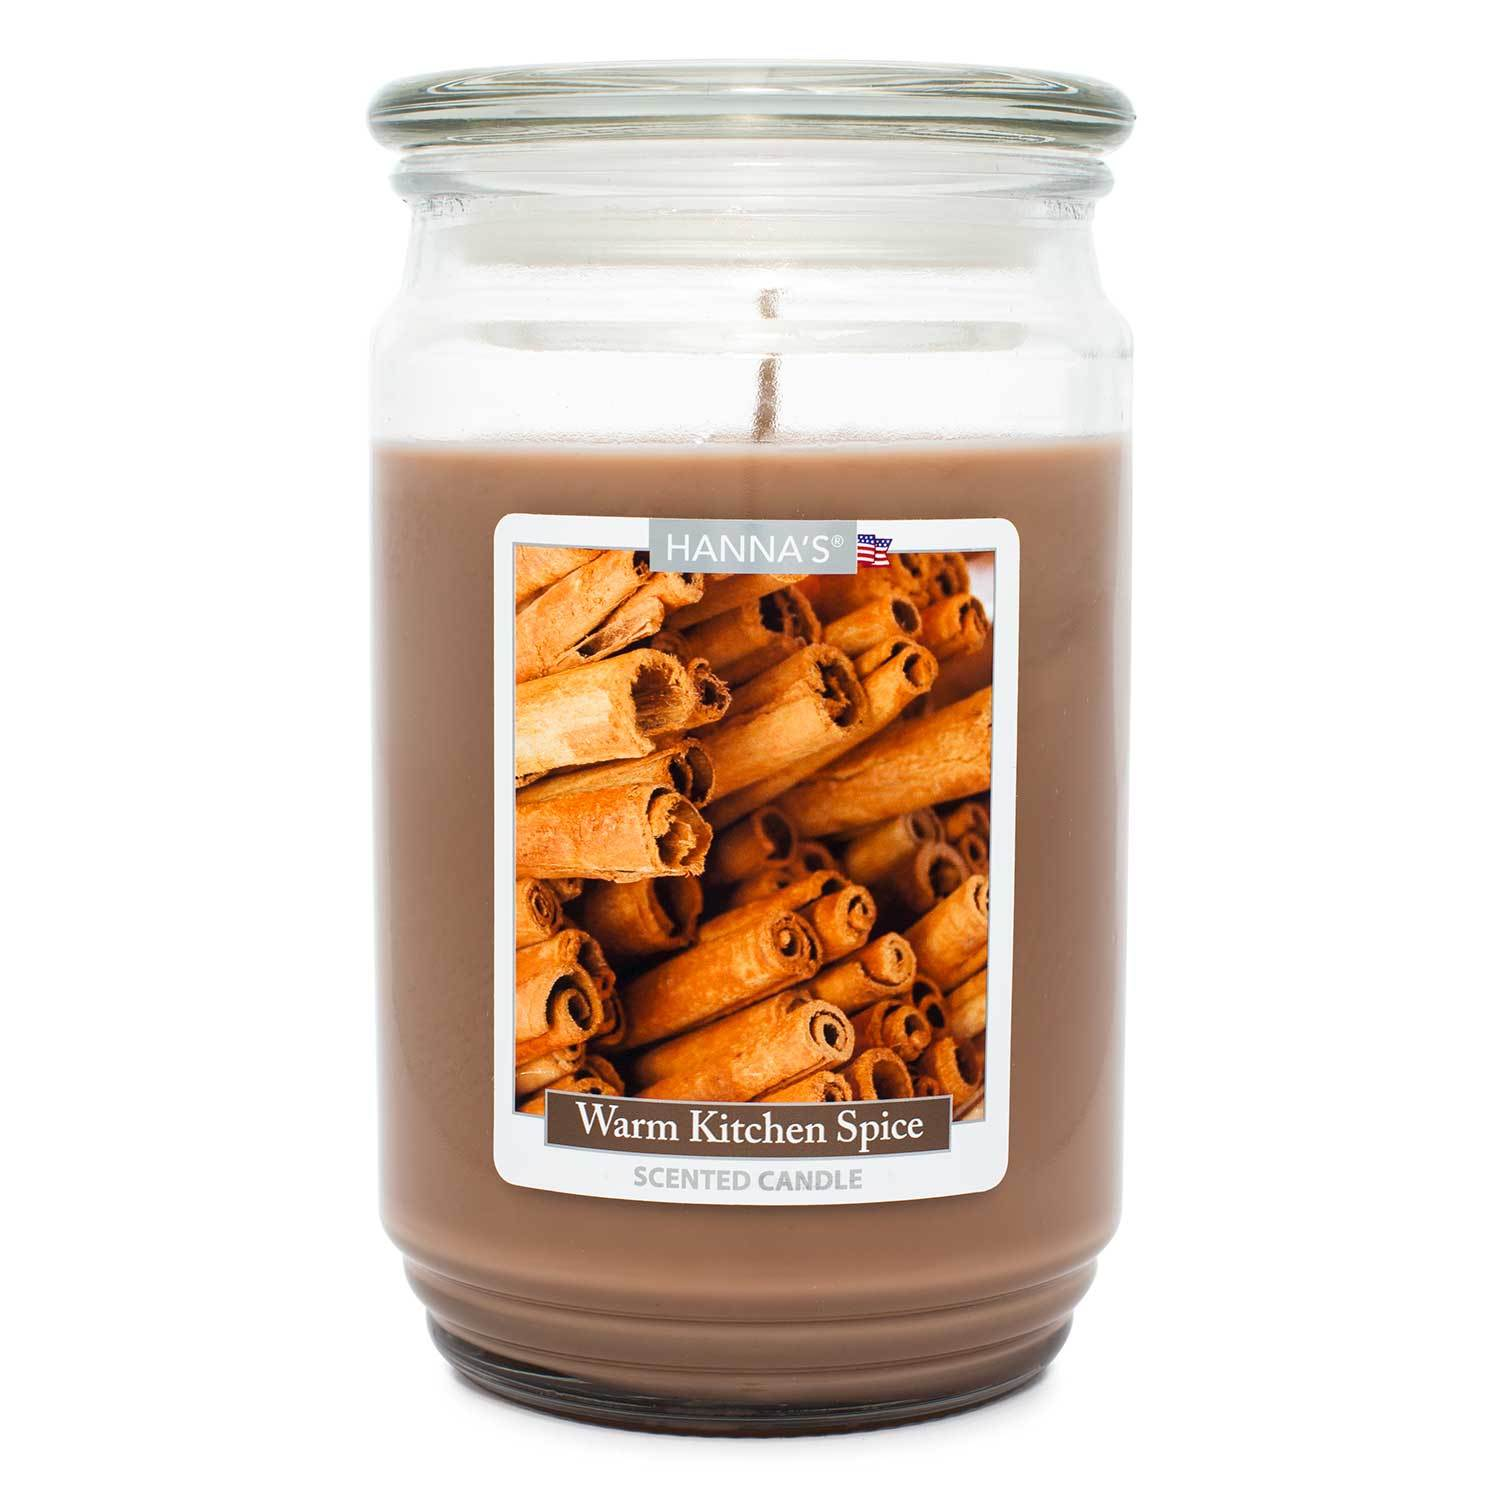 Warm Kitchen Spice Scented Large Candle Candles Candlemart.com $ 12.99